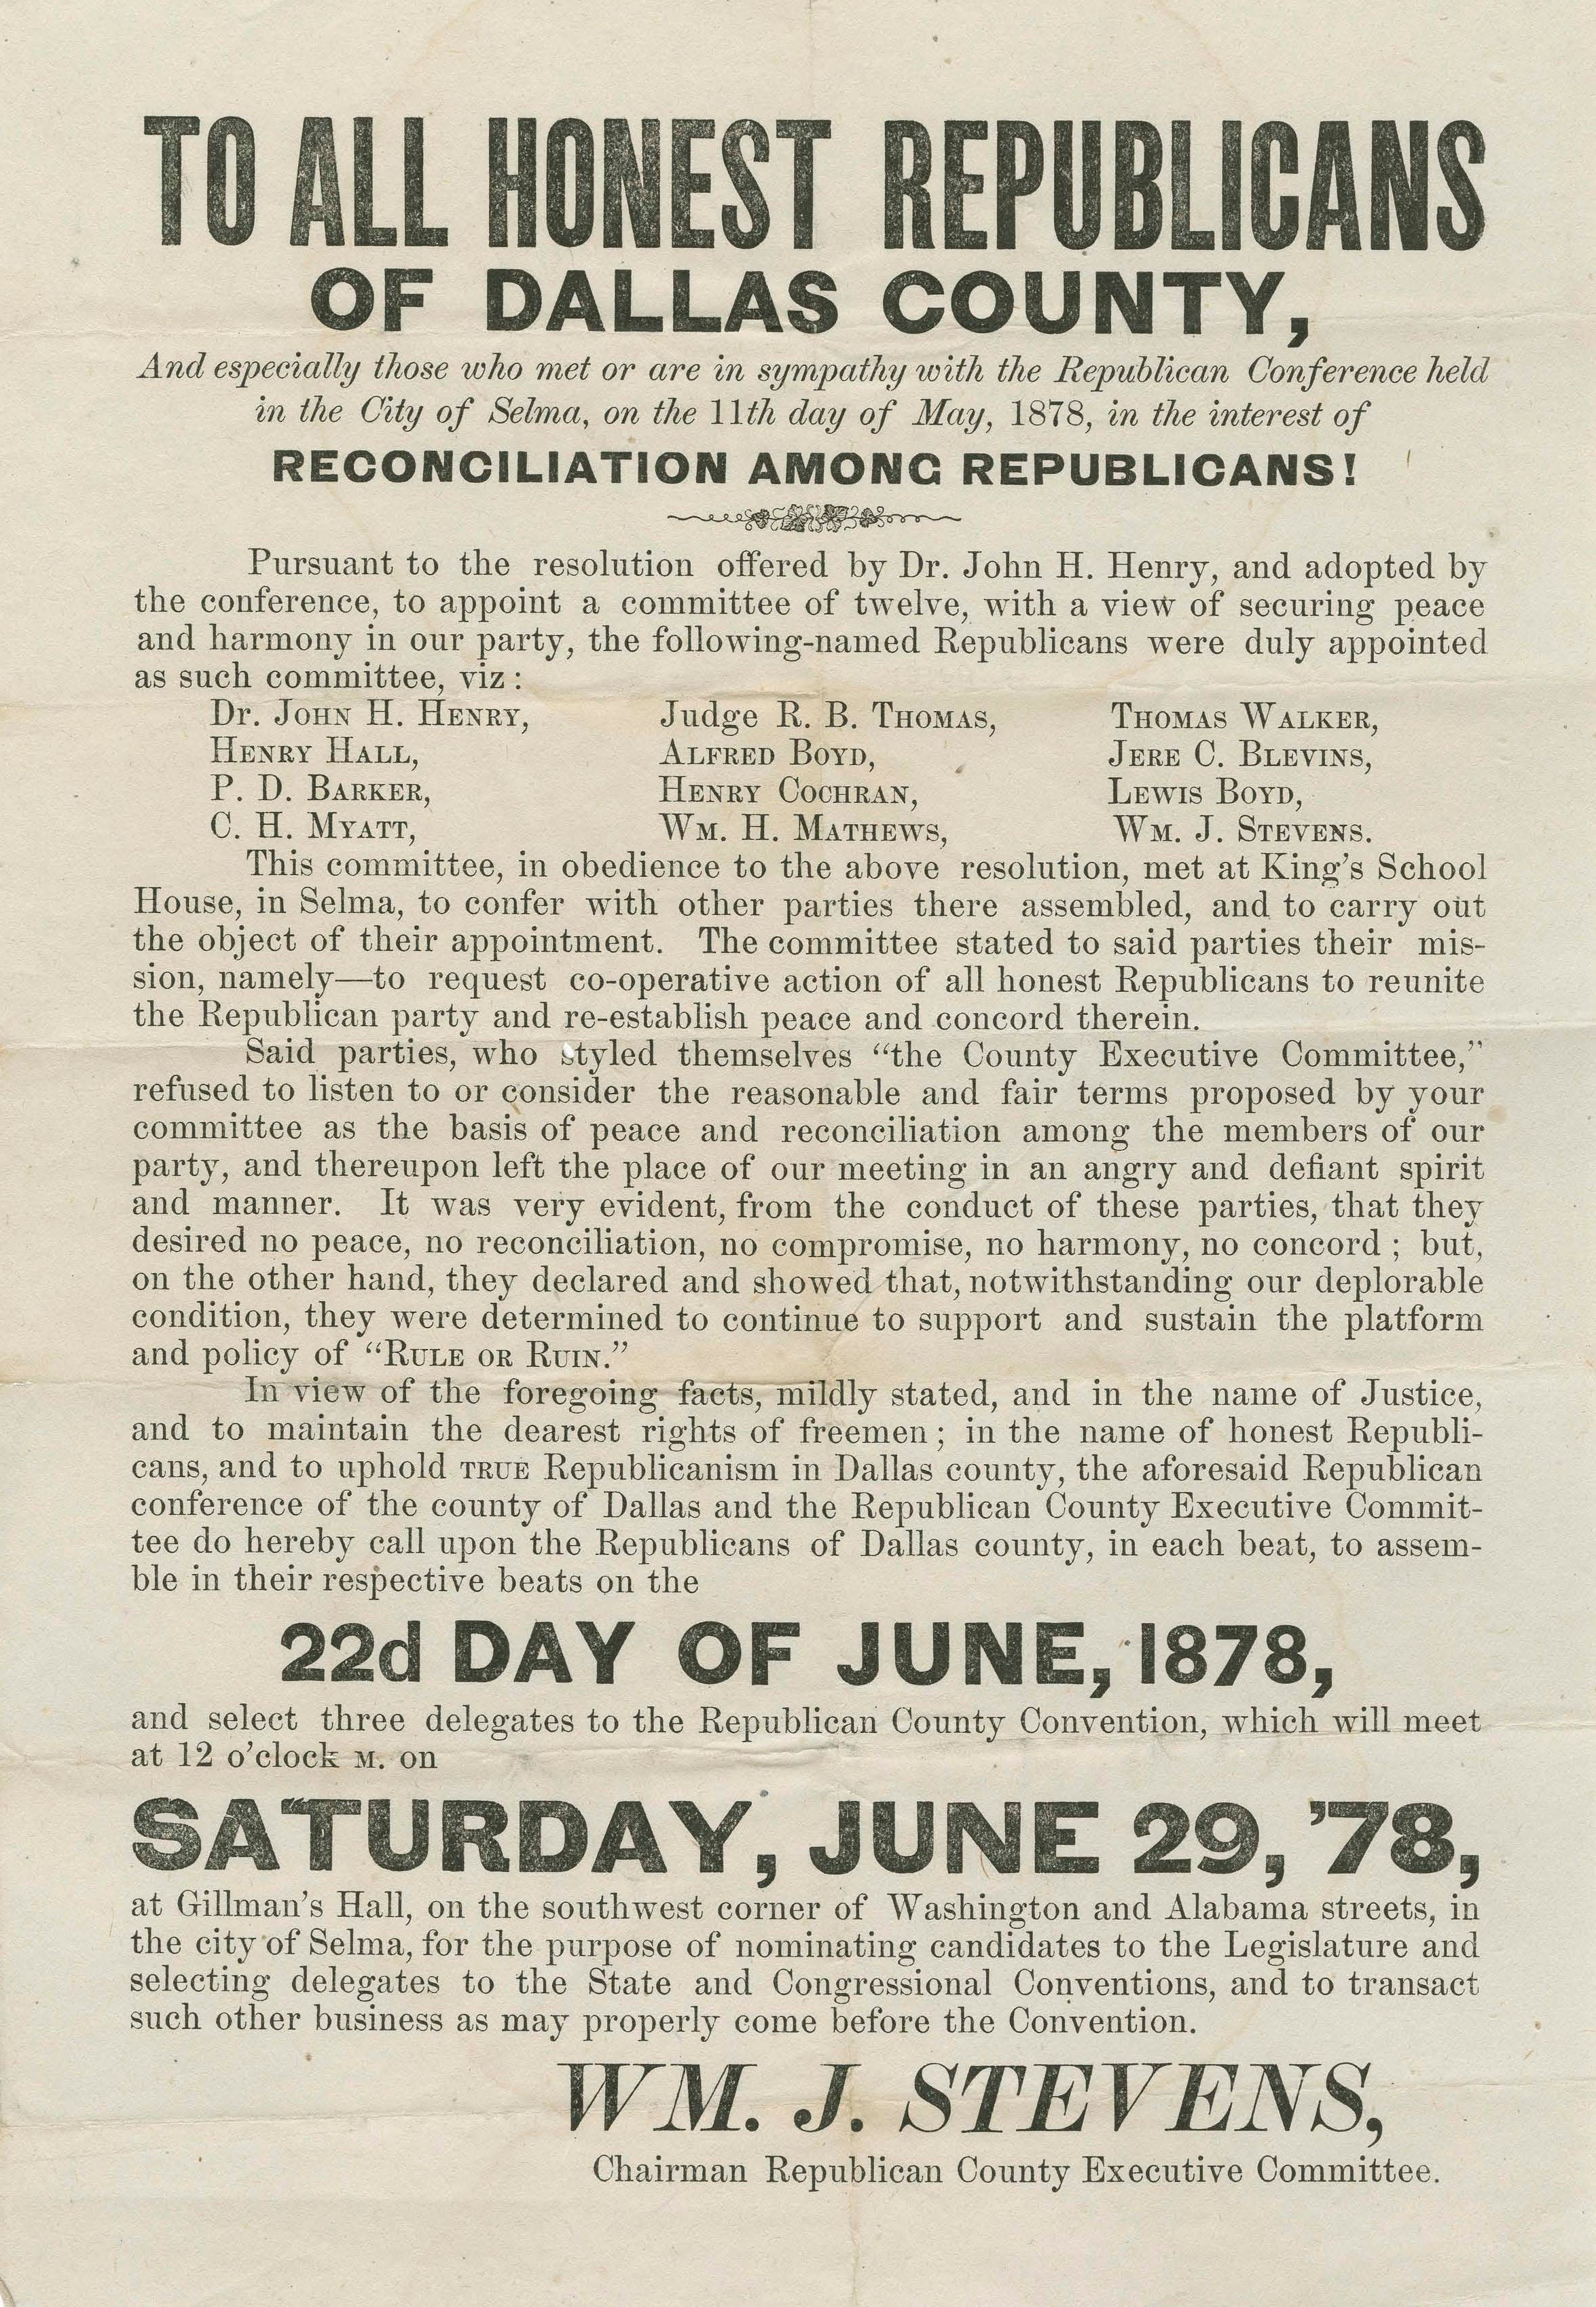 An announcement from the Republican Party of Dallas County in May 1878 , signed by Haralson's ally, William J. Stevens.